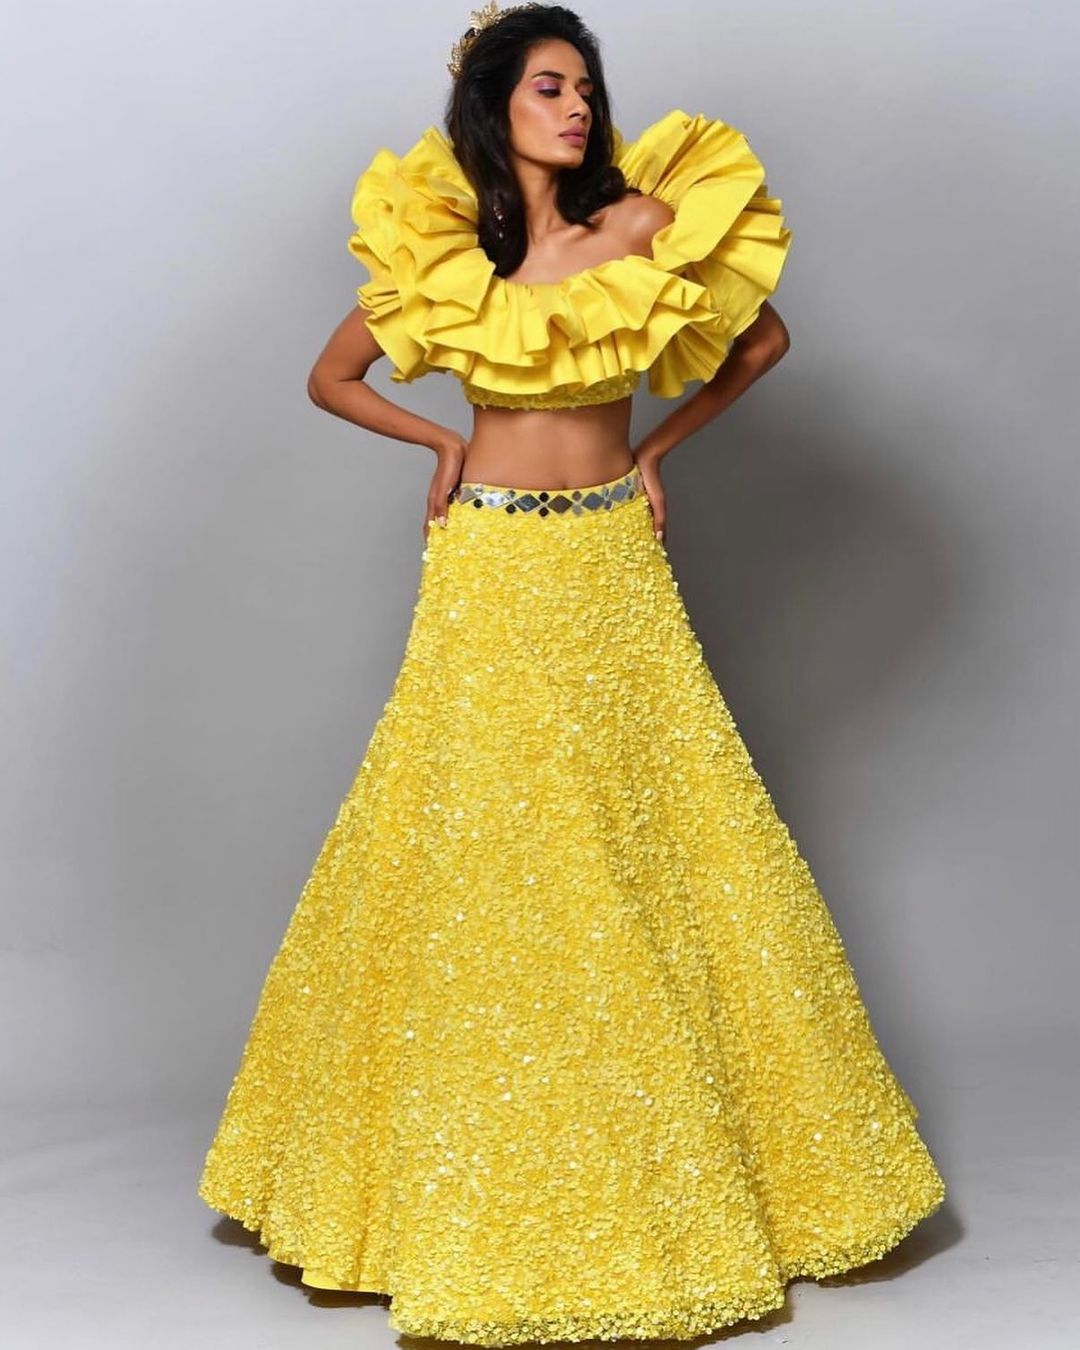 Stunning yellow color sequin skirt and off shoulder ruffle crop top. 2021-07-01